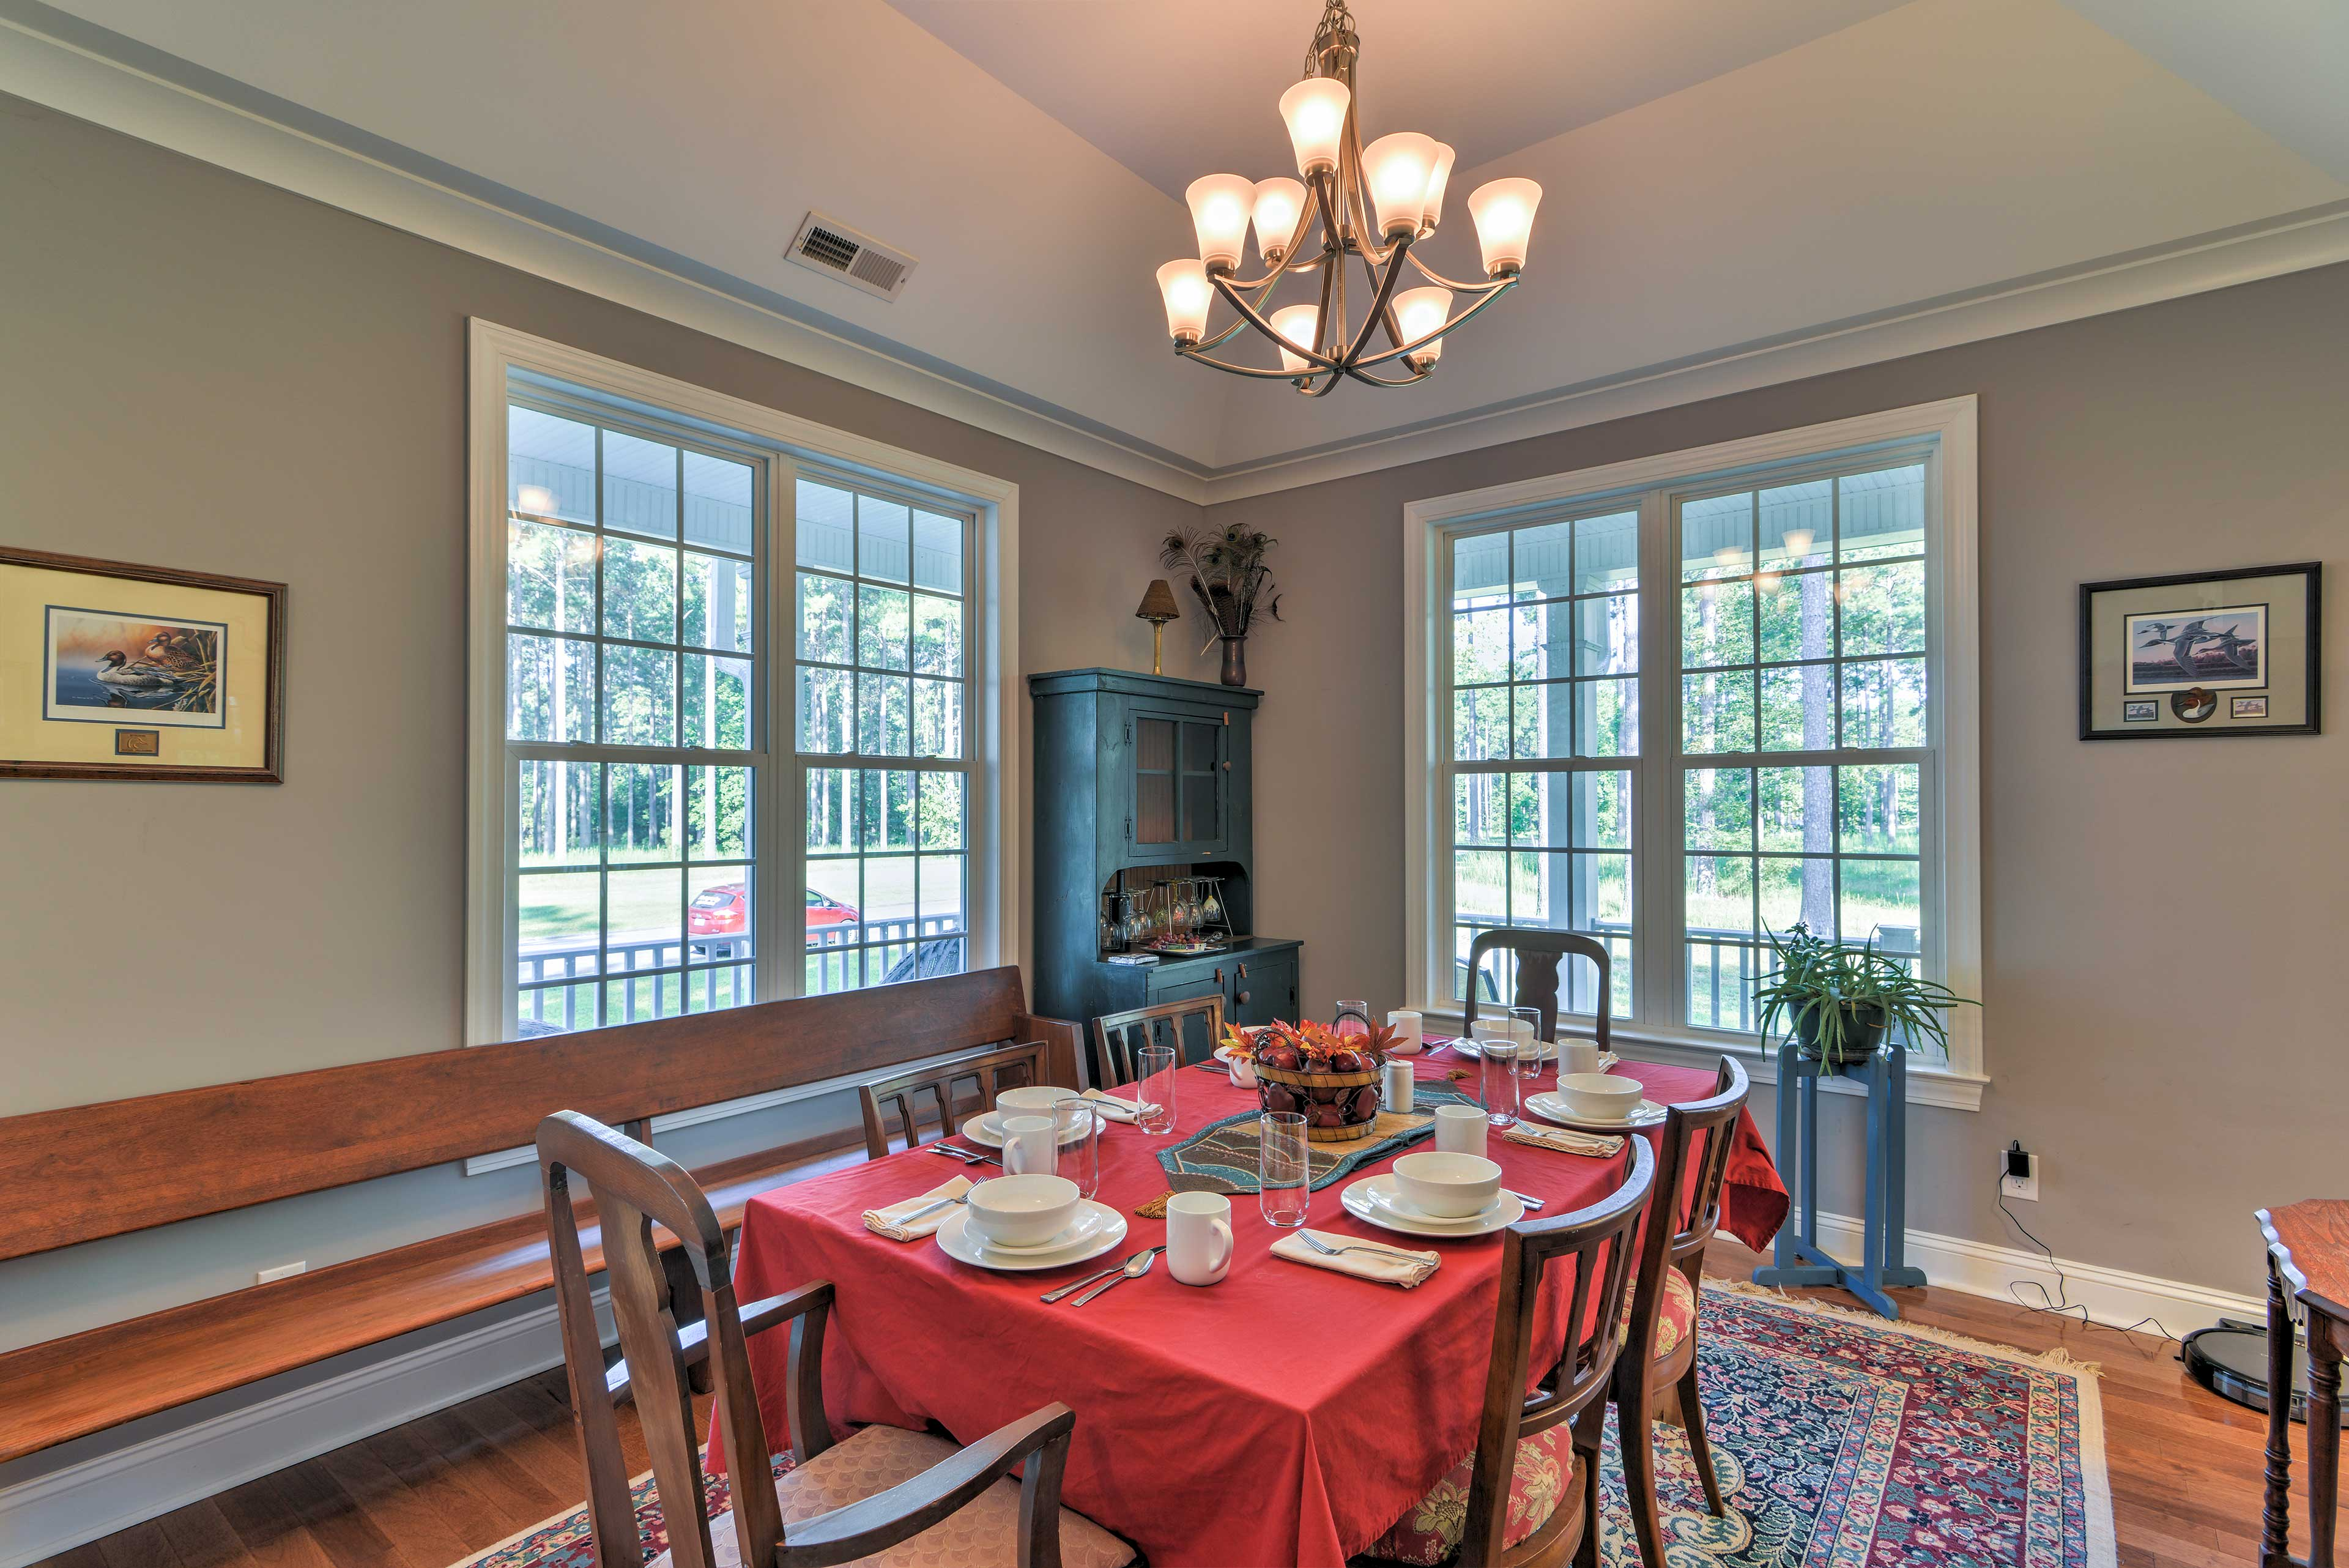 You'll find a more formal dining table down the hall, where you can enjoy a peaceful candlelight dinner.